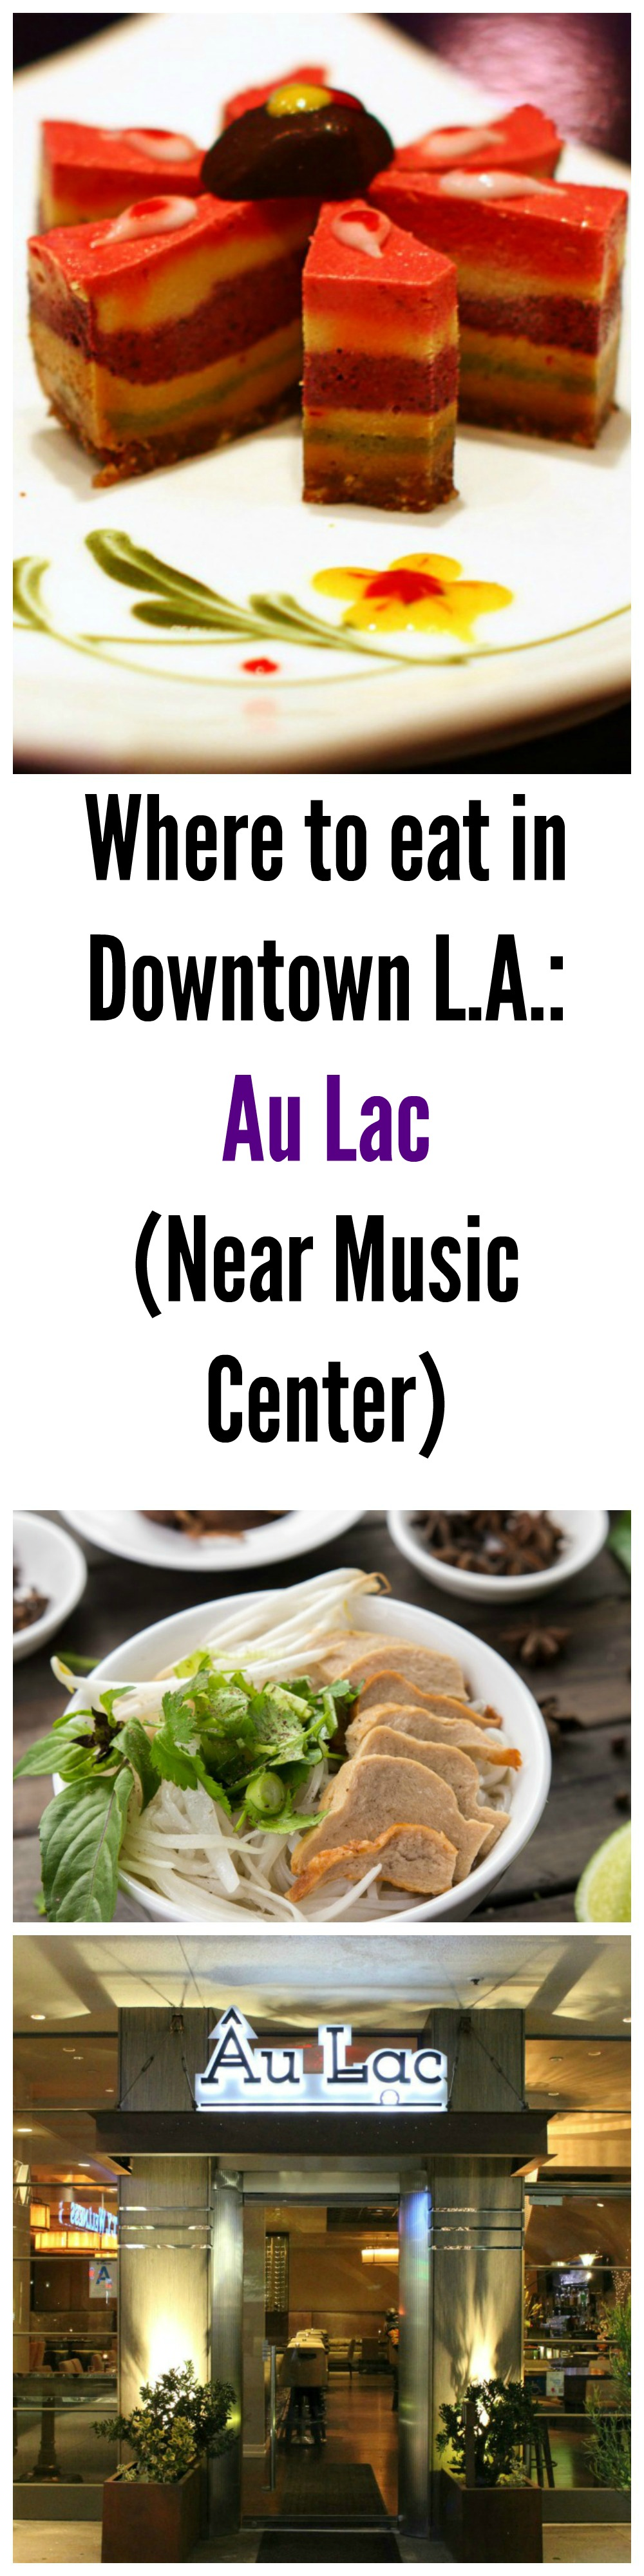 Where to eat in Downtown L.A. near the Music Center Au Lac on ShockinglyDelicious